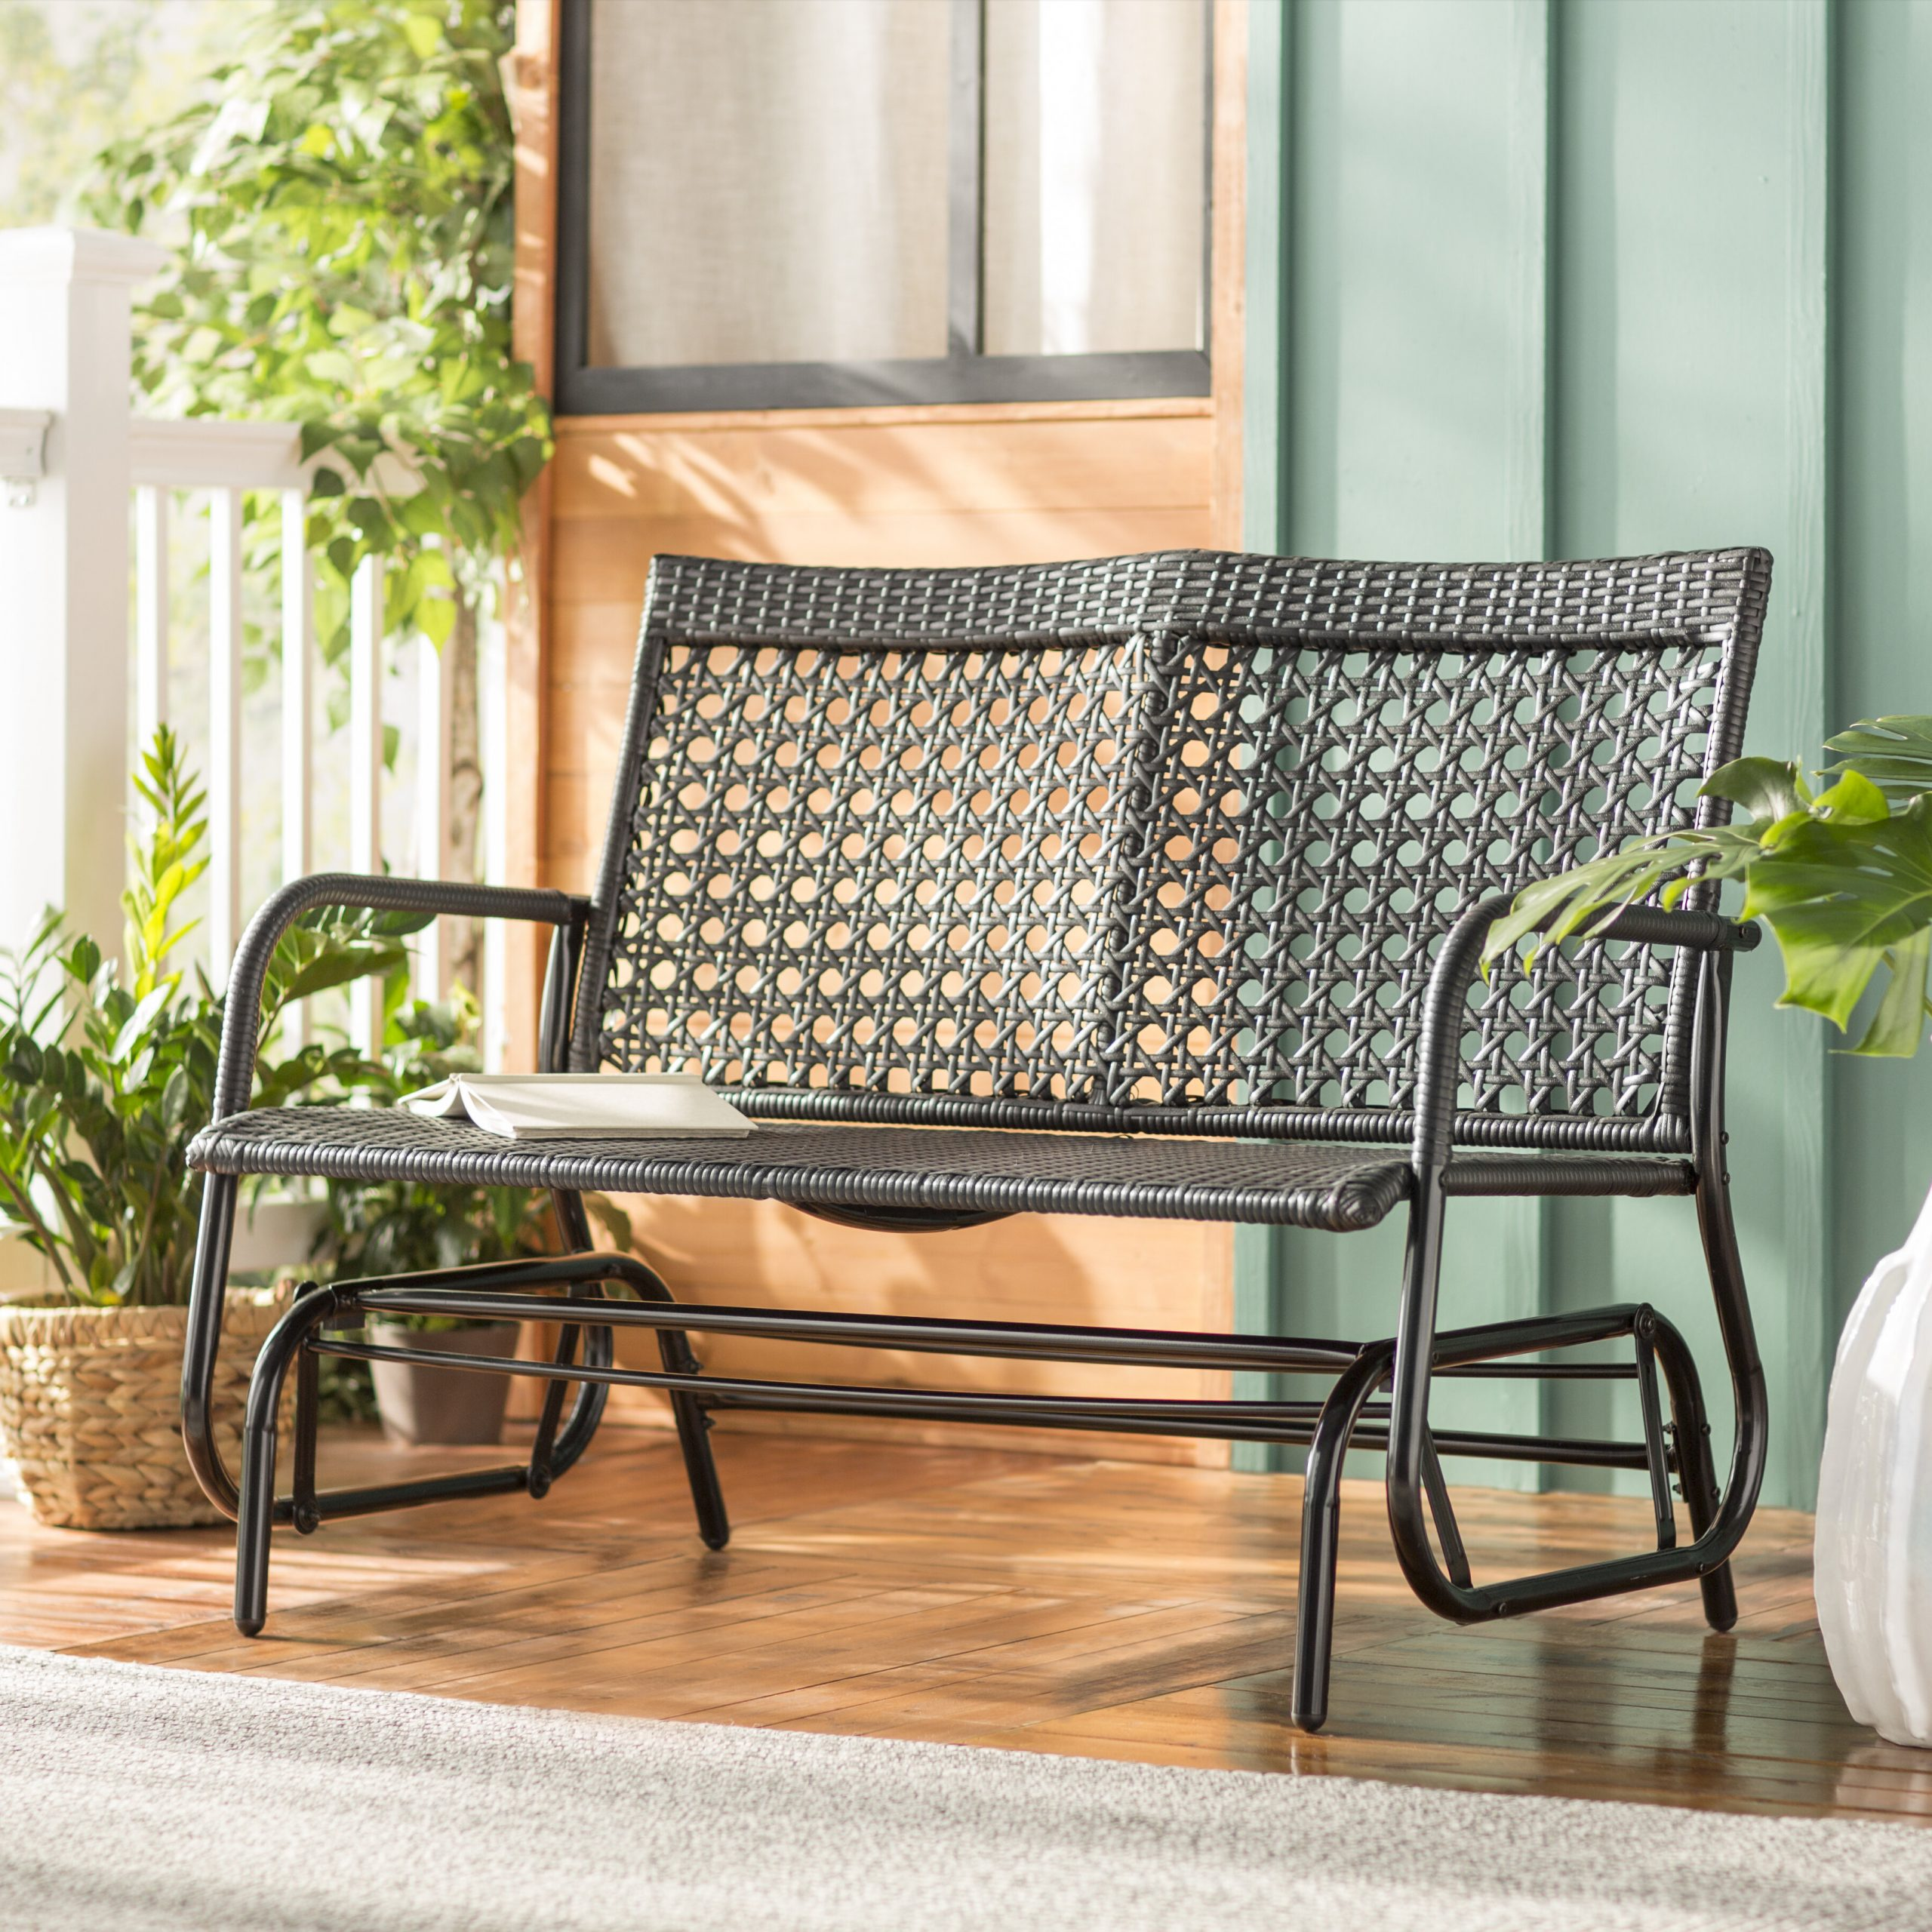 Wrought Studio Shupe Steel Rattan Outdoor Patio Double Intended For Double Glider Benches With Cushion (Image 25 of 25)